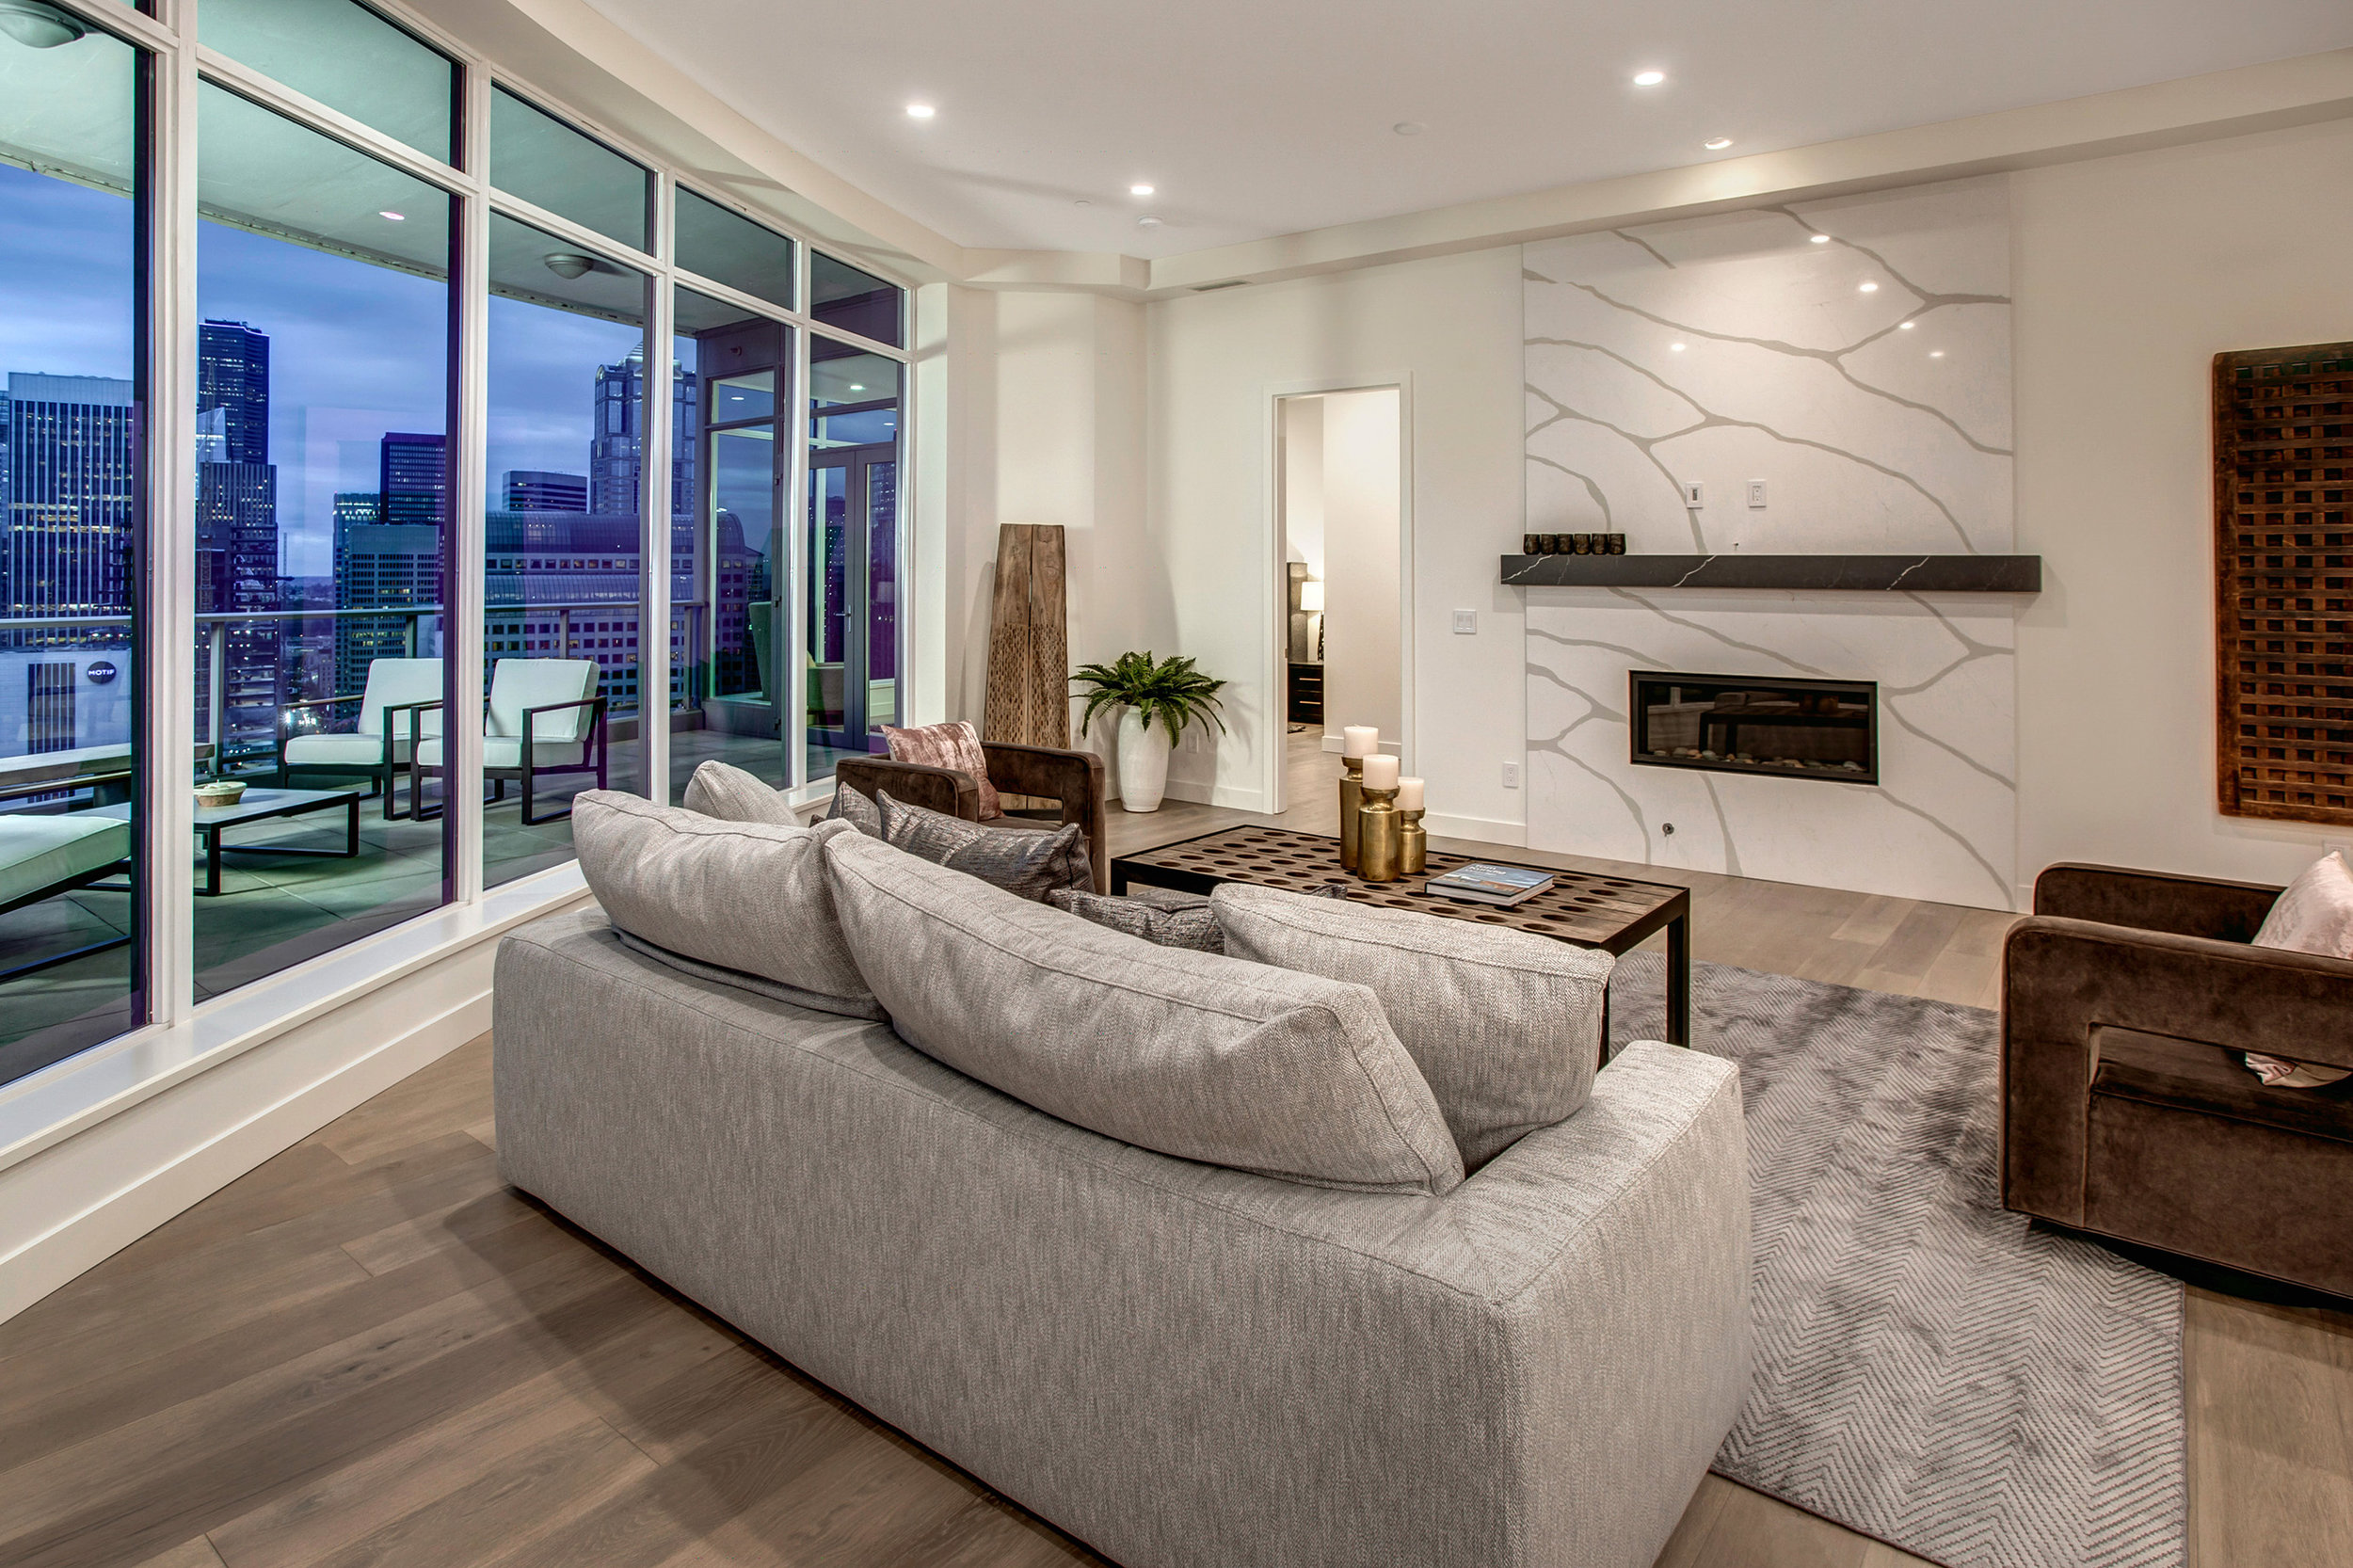 Spectacular great room with southeast facing views of the city and Cascade mountains, Heat & Glo gas fireplace with River Rock Design Media, Calacatta Quartz wall accent, and a Sorano honed finish Quartz mantel.